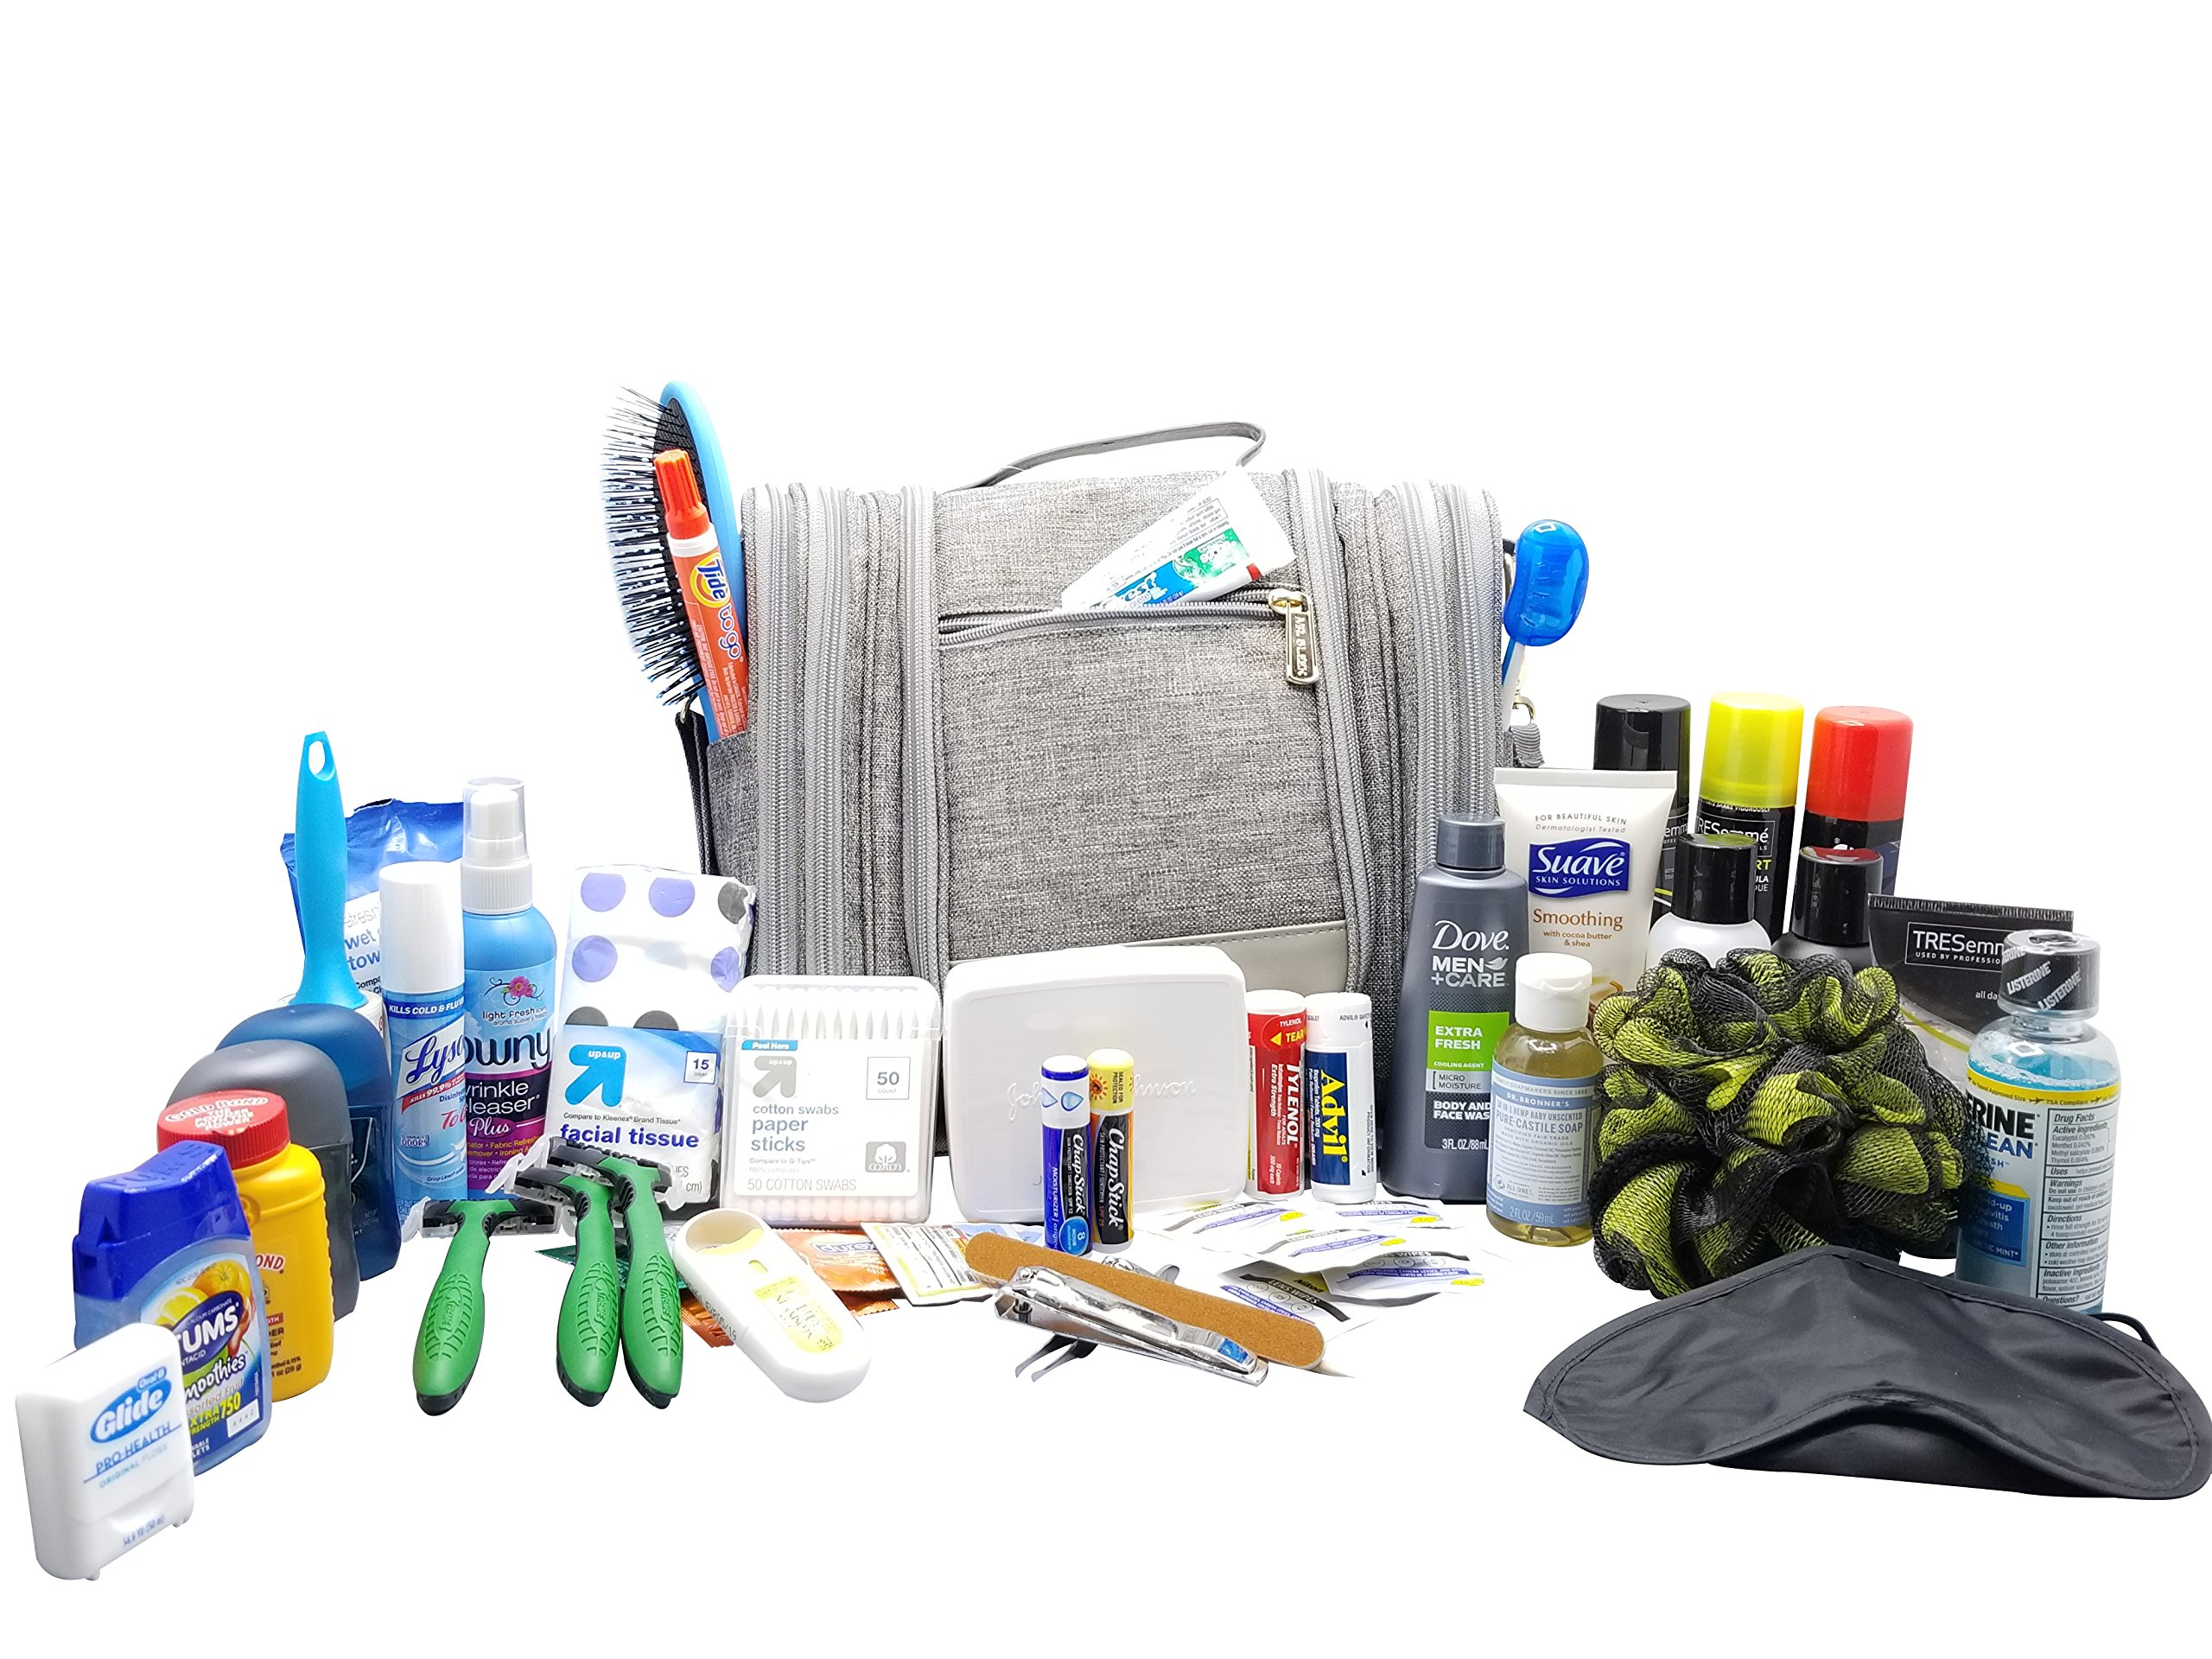 Ultimate Travel Toiletry Bag - Complete Kit Packed With HUGE Number Of Popular Toiletry Supplies. Water Resistant Hanging Toiletry Kit and Items are 100% TSA Approved. Attractive Organizer Case for Me